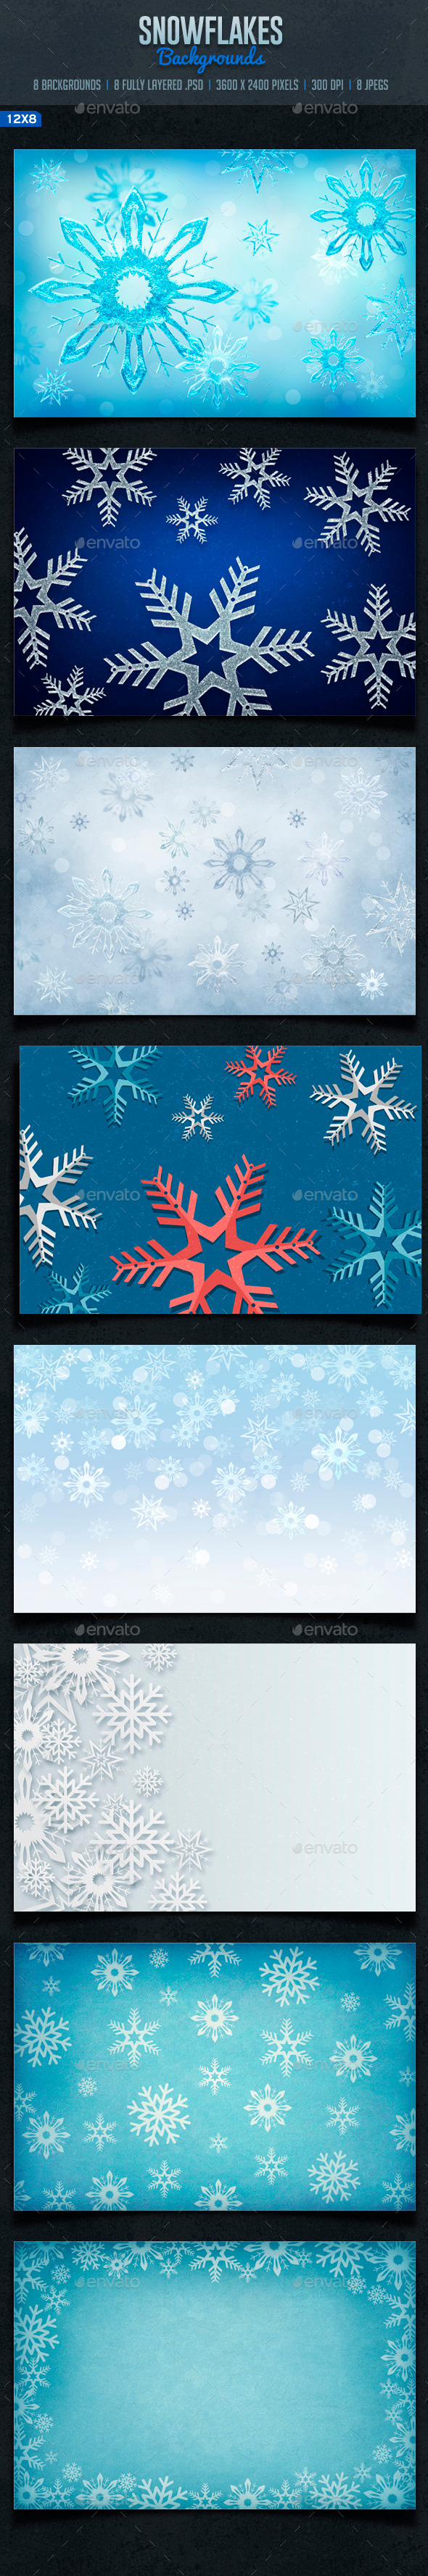 GraphicRiver Snowflakes Backgrounds 9546262